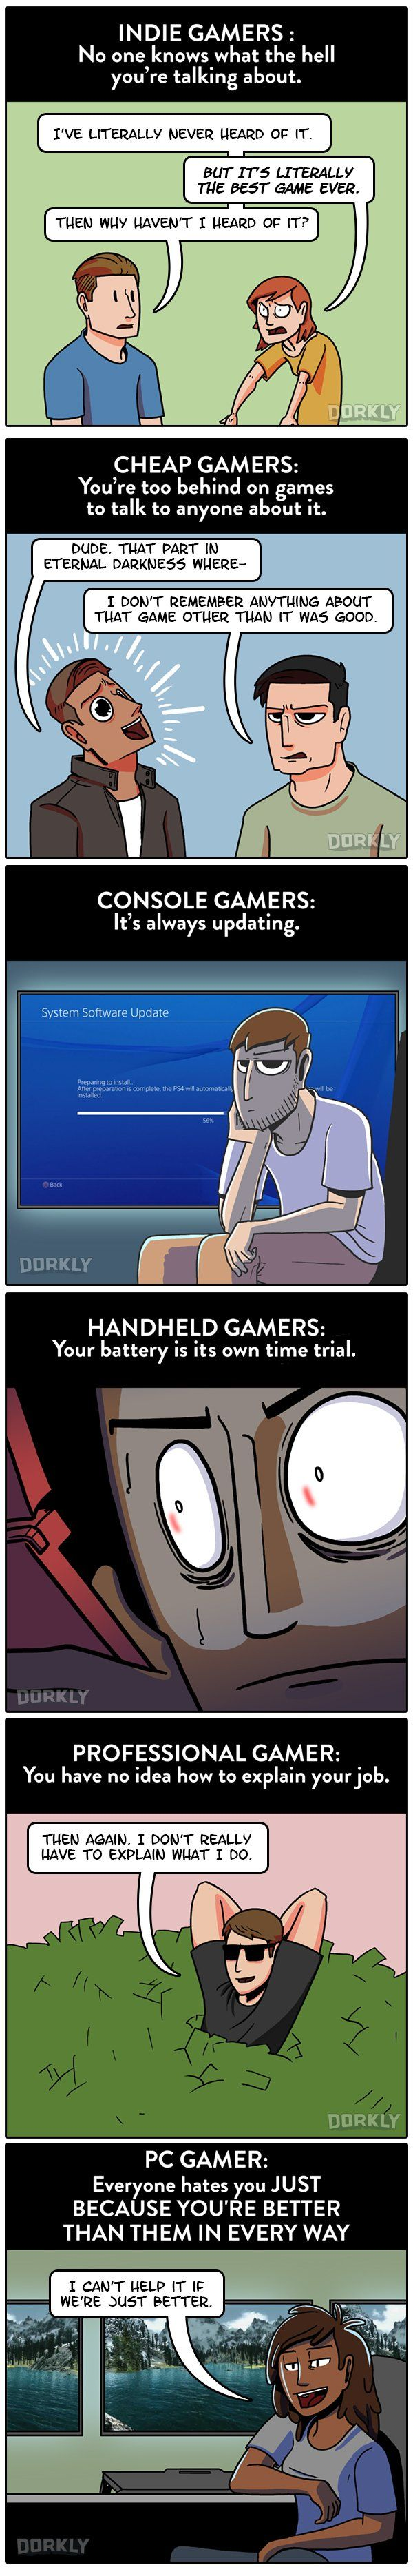 Gamer issues.